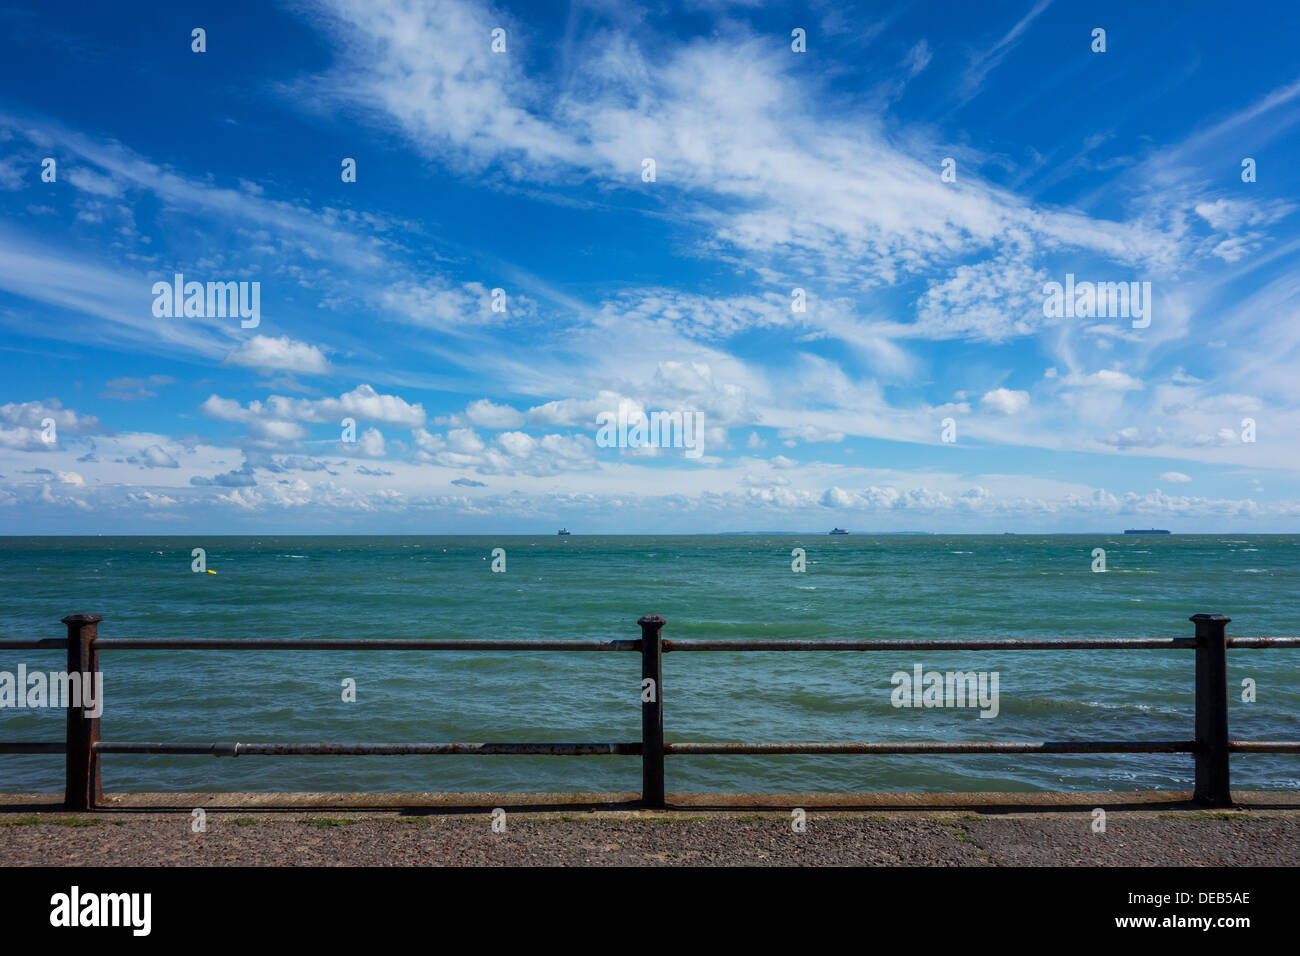 English Channel Seascape Skyscape Promenade Waves Sea.  St Margarets Bay Dover Kent - Stock Image